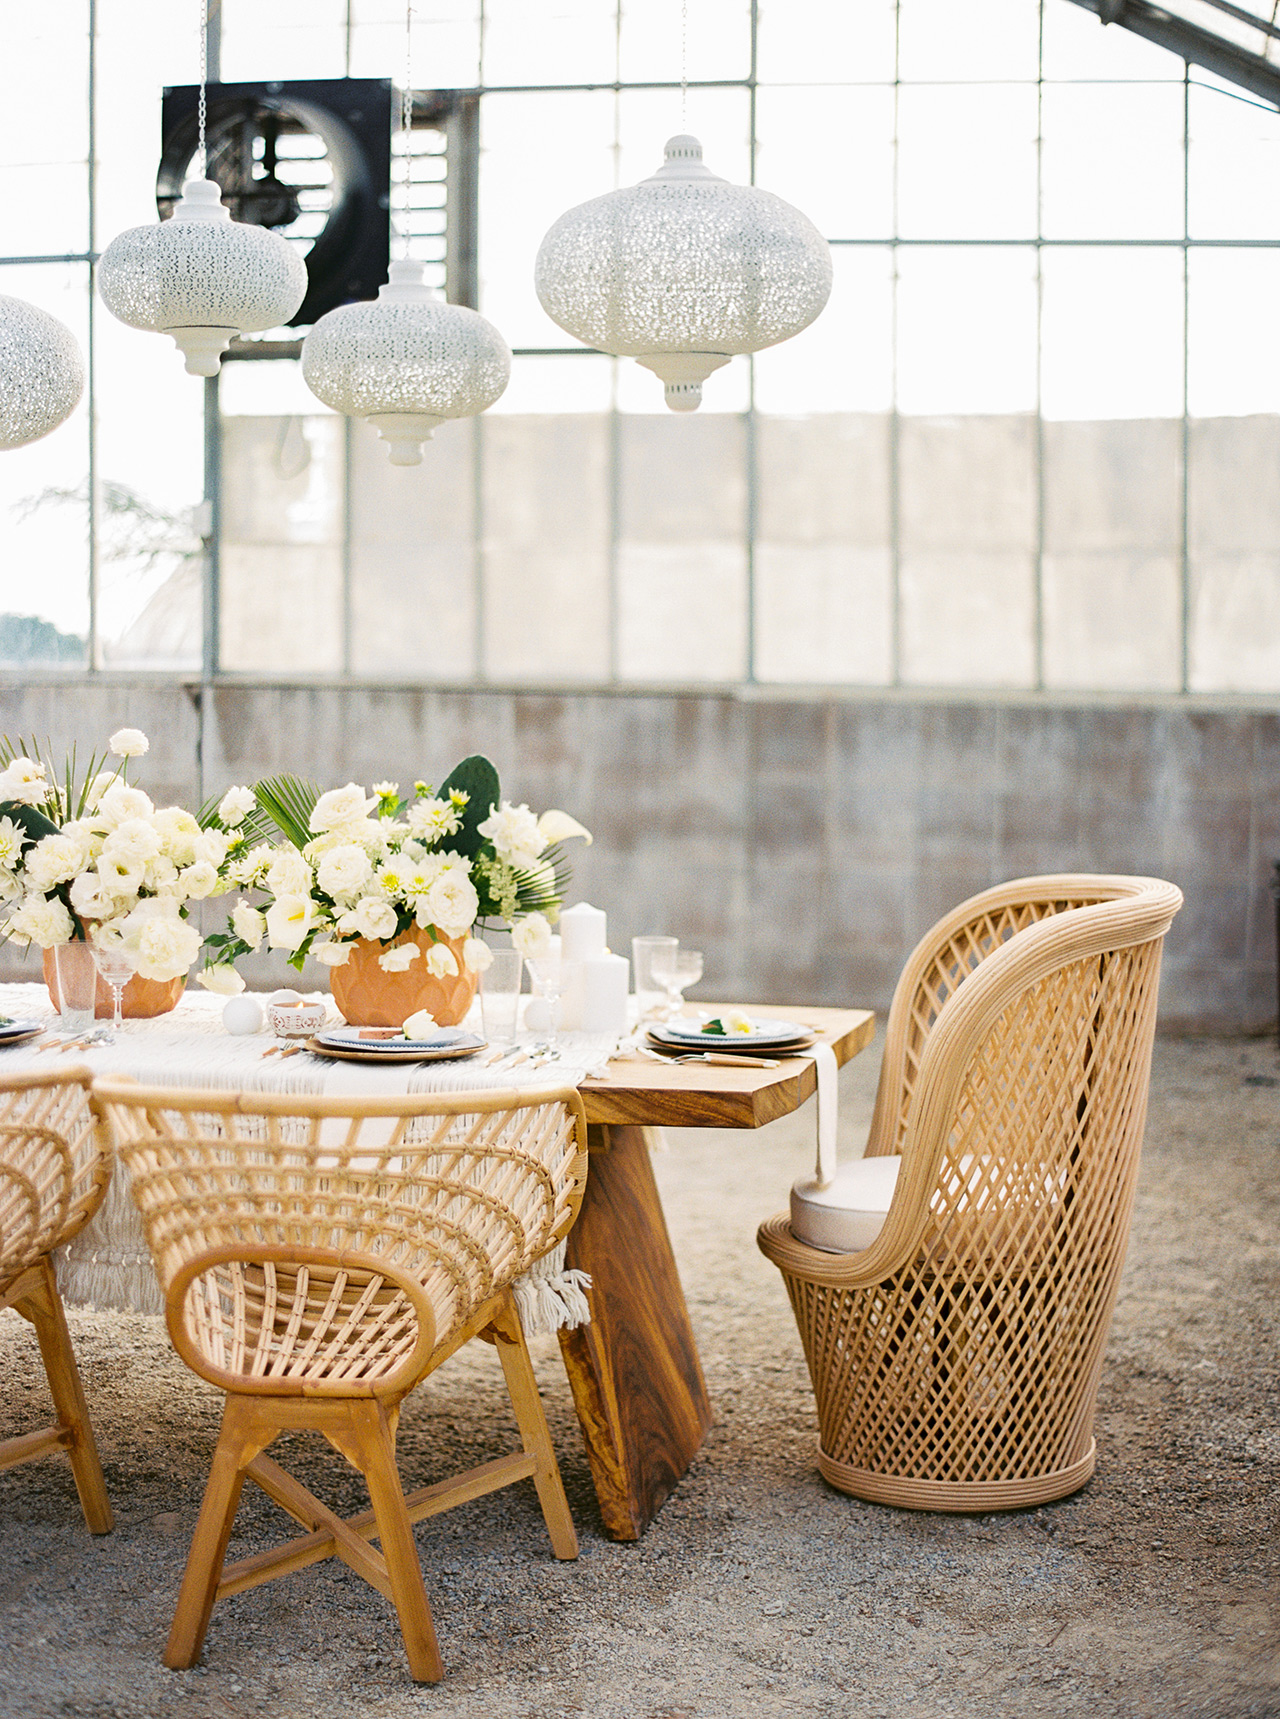 wicker chairs brunch party table setting